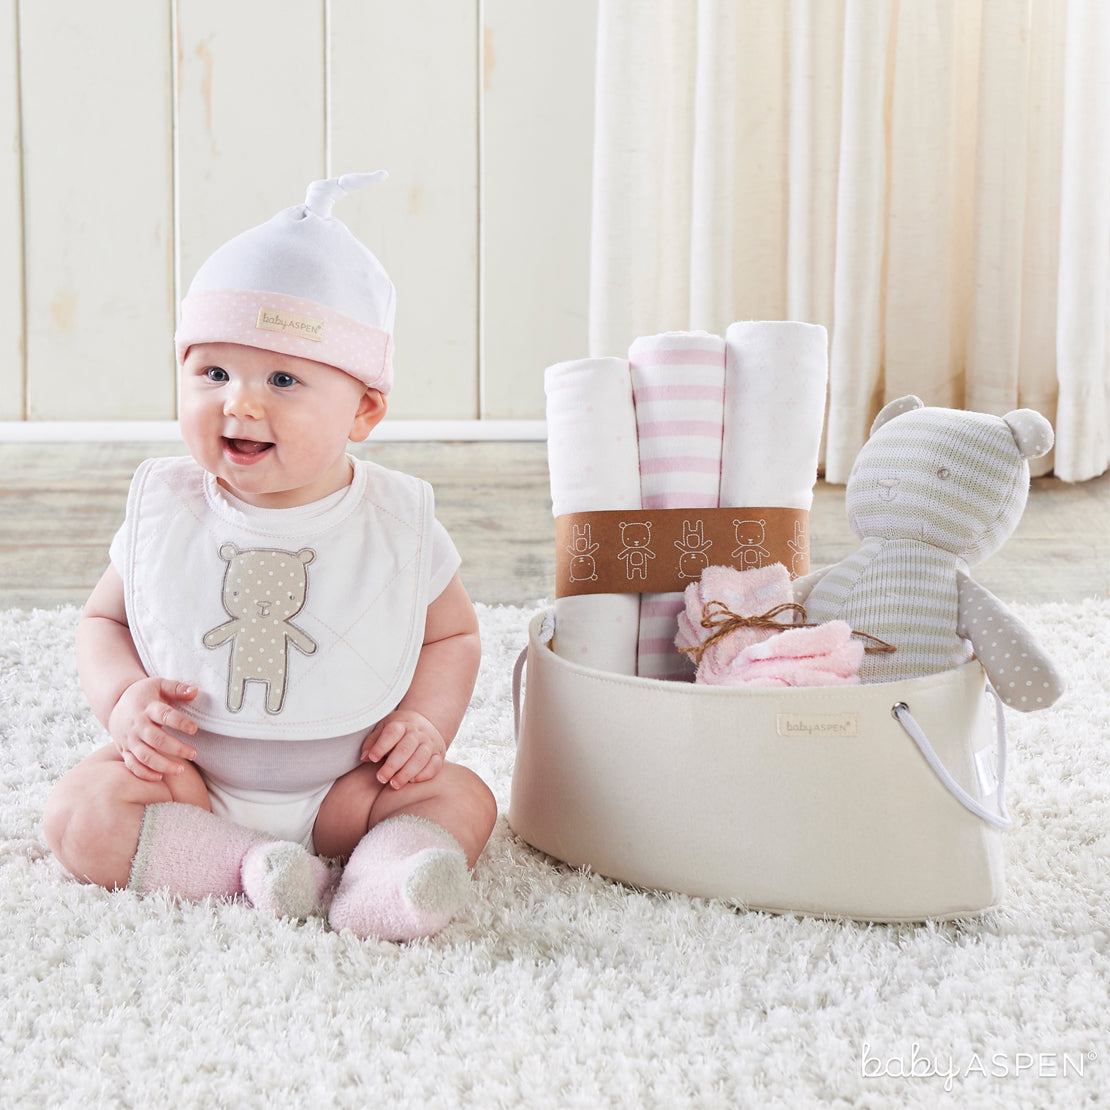 Beary Special Gift Set With Baby | Unique Gift Sets Perfect For Any Baby Shower | Baby Aspen